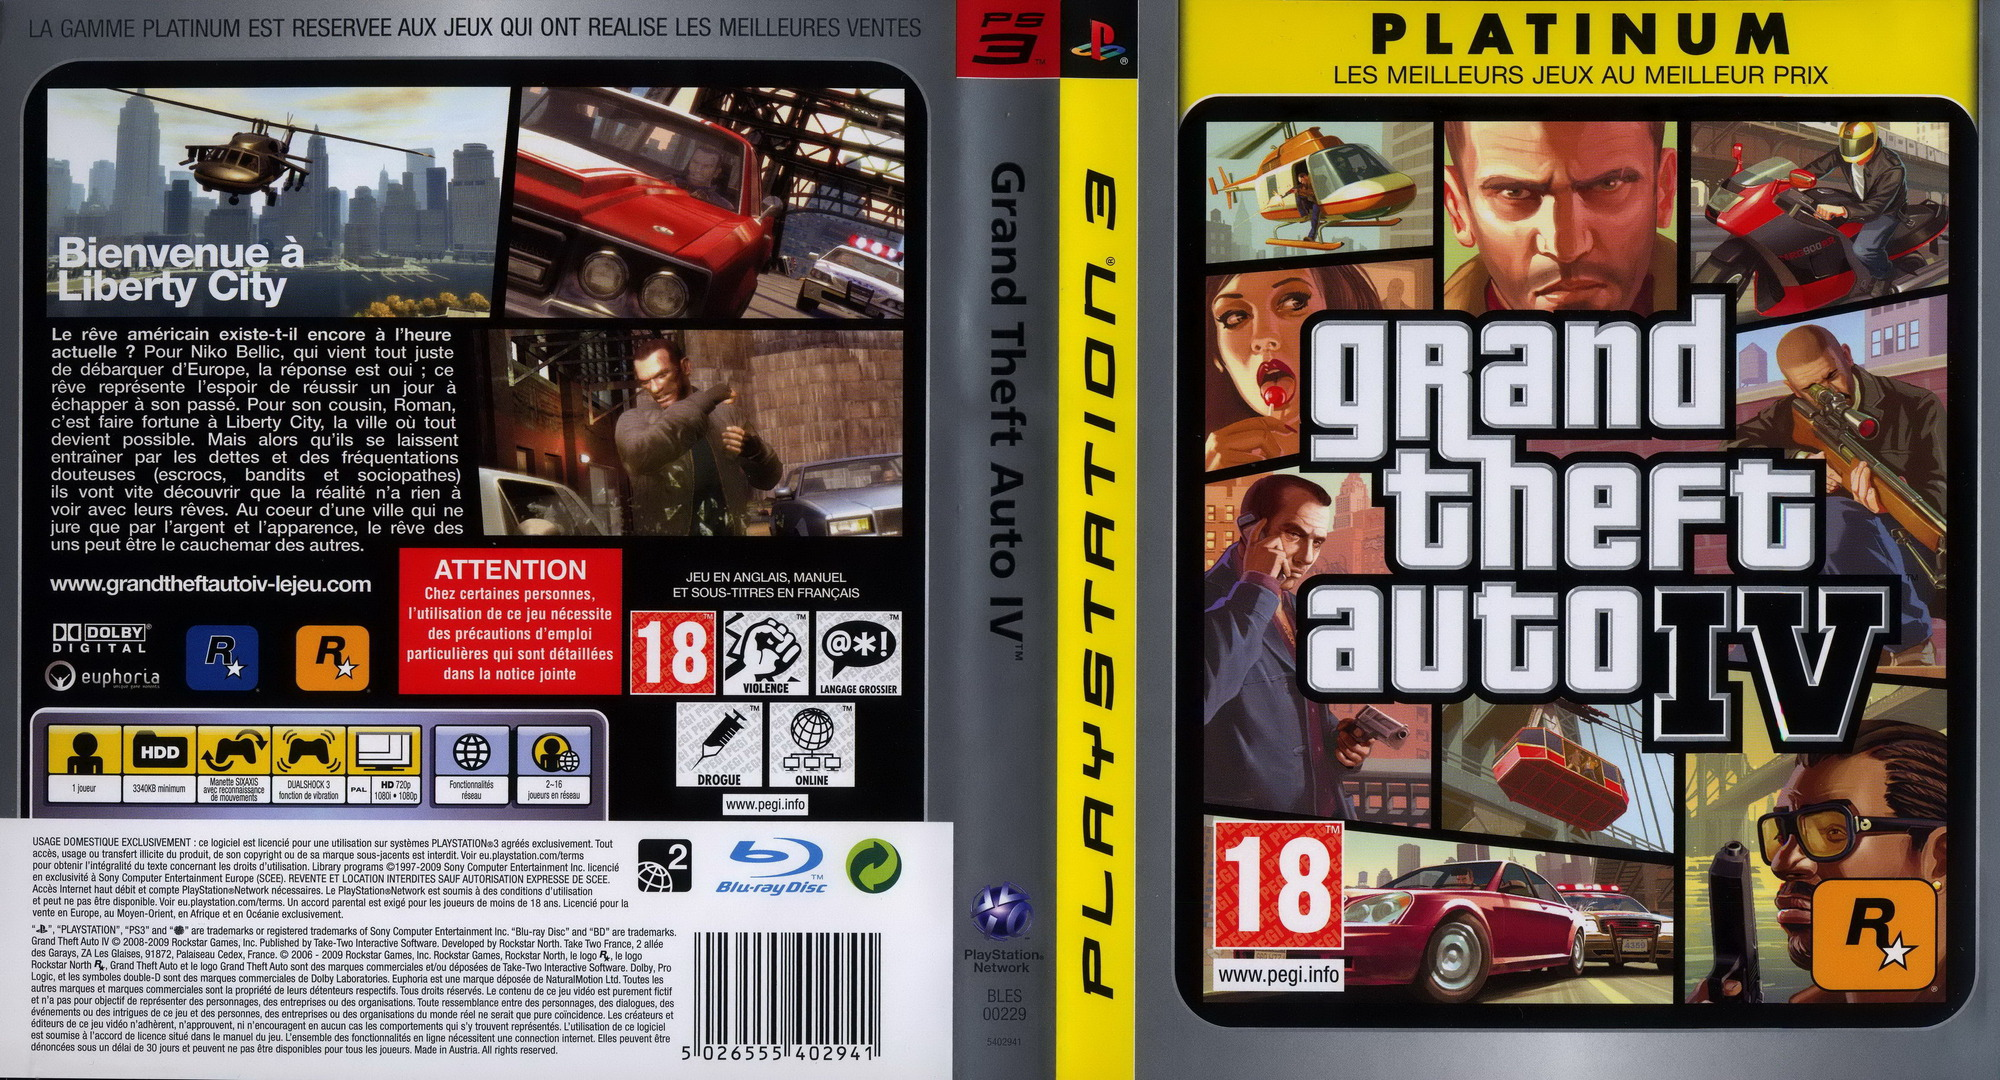 grand theft auto iv dating Guides, walthroughs, hints and tips for gta iv igrand theft auto presents girlfriends guide.